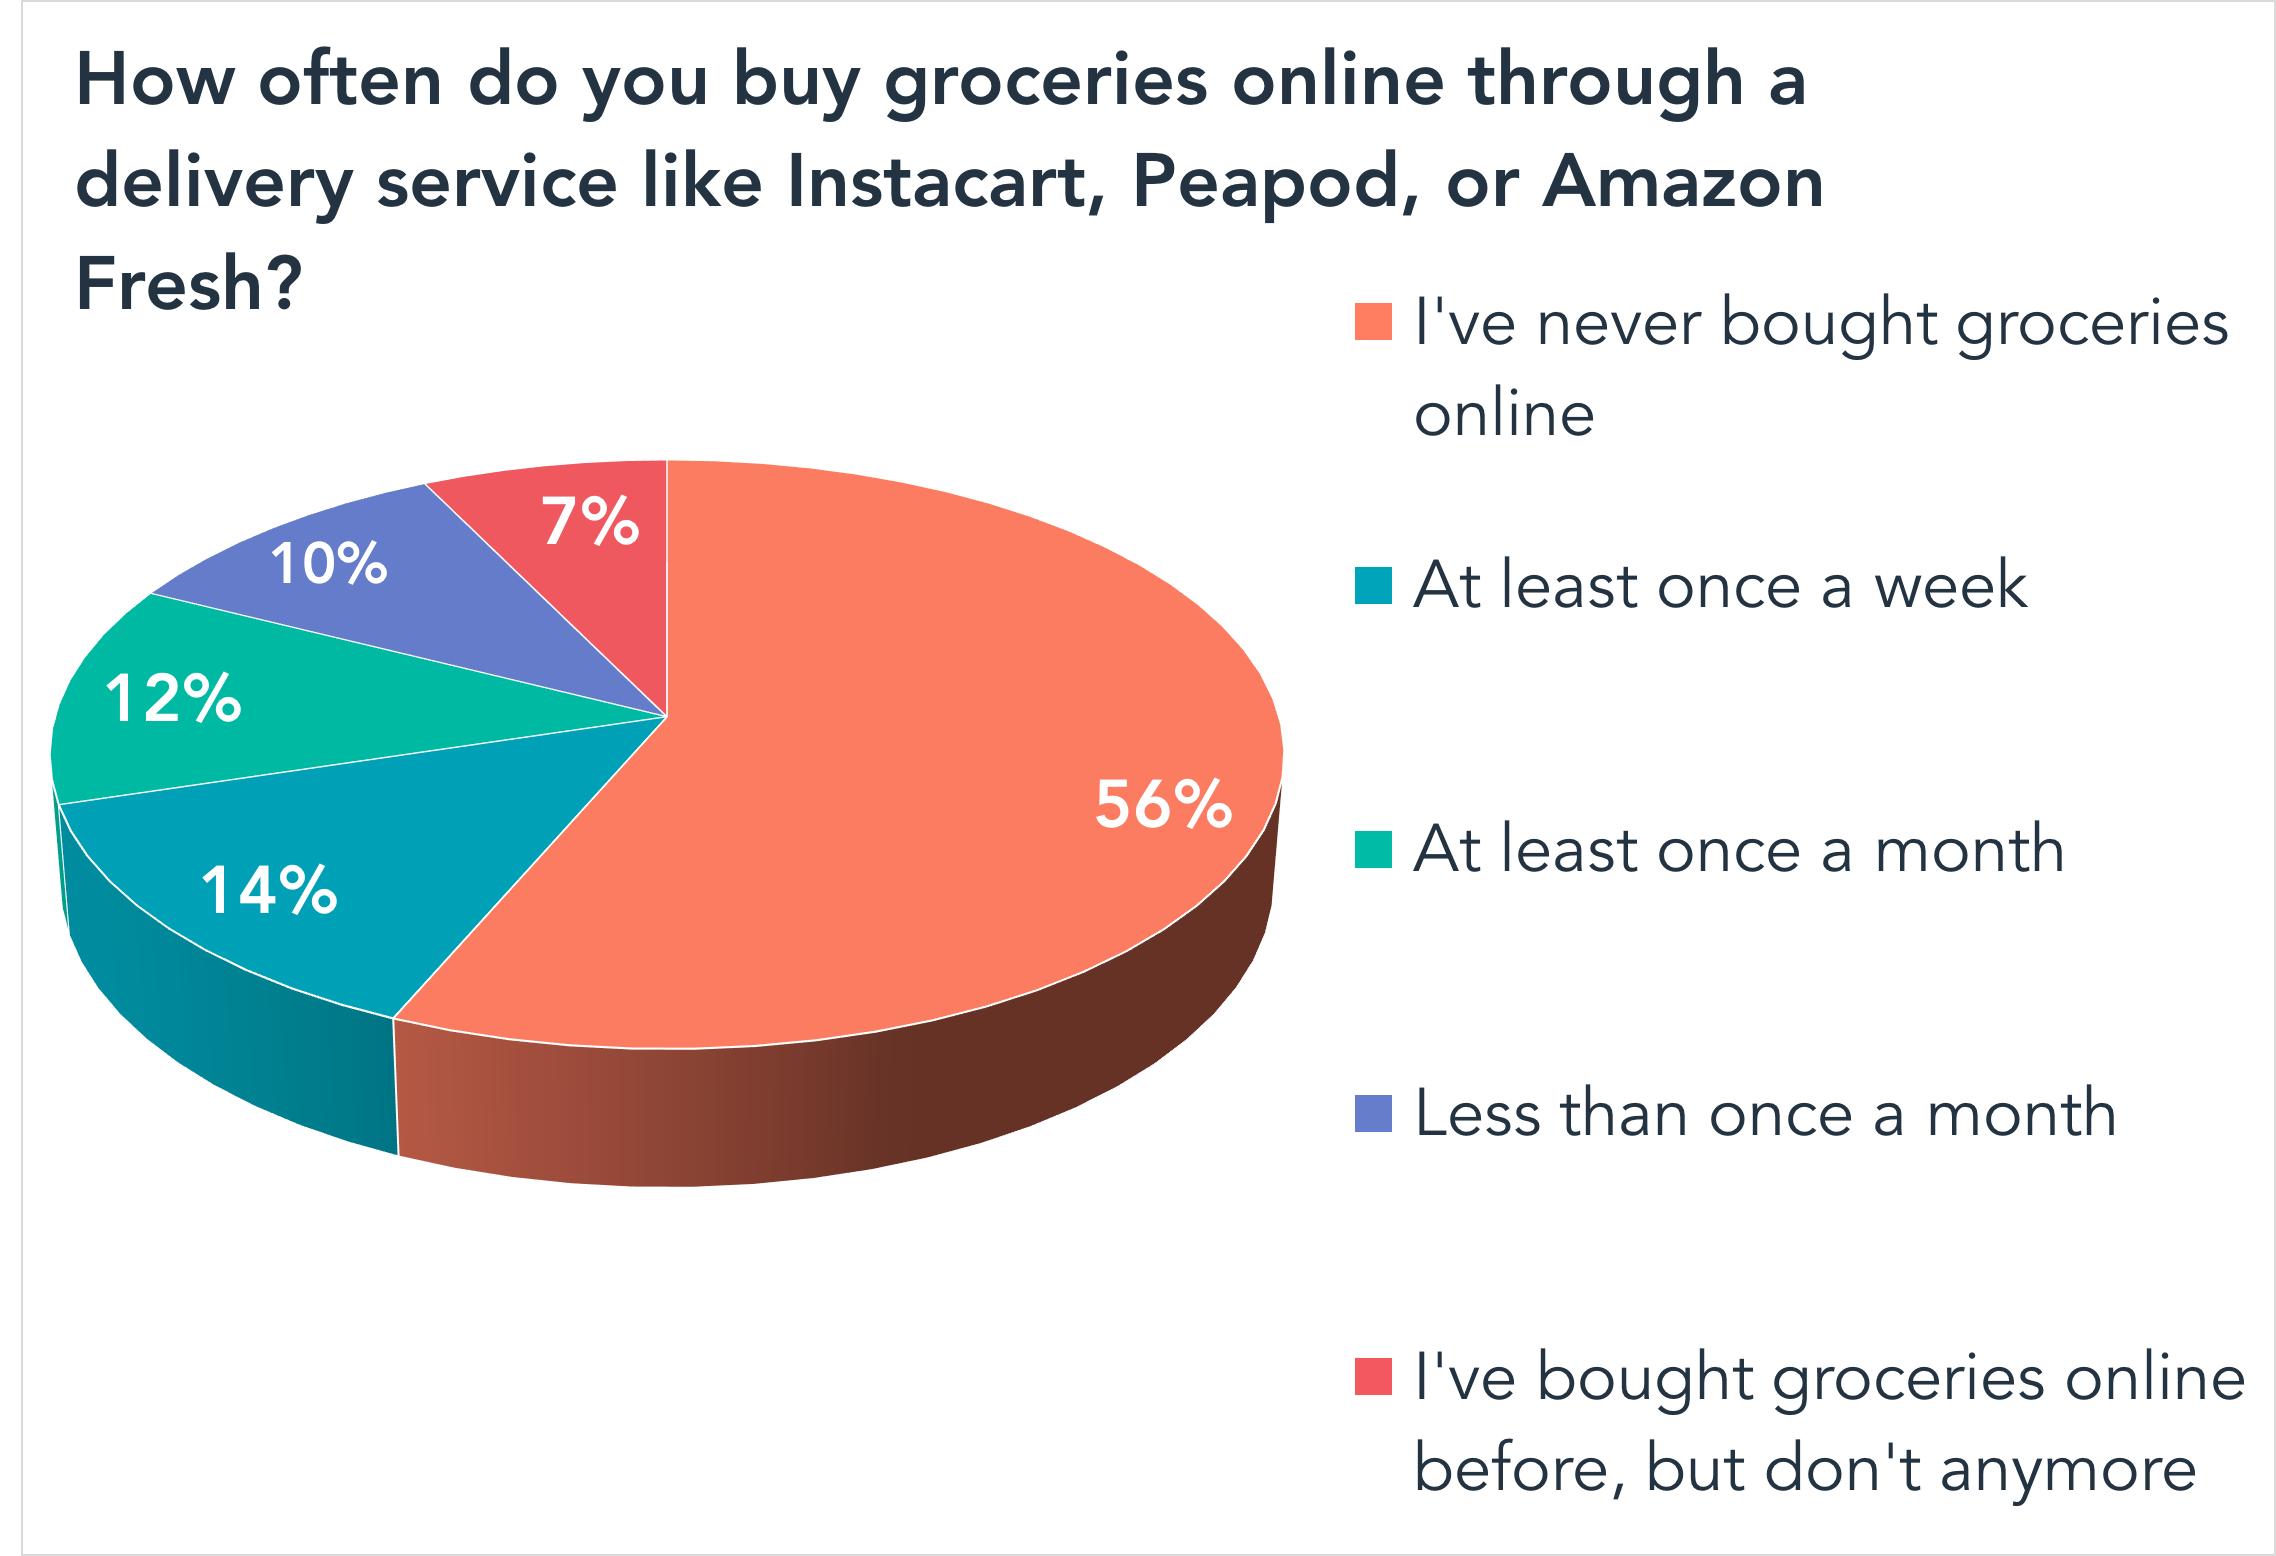 How often do you buy groceries online through a delivery service like Instacart, Peapod, or Amazon Fresh?